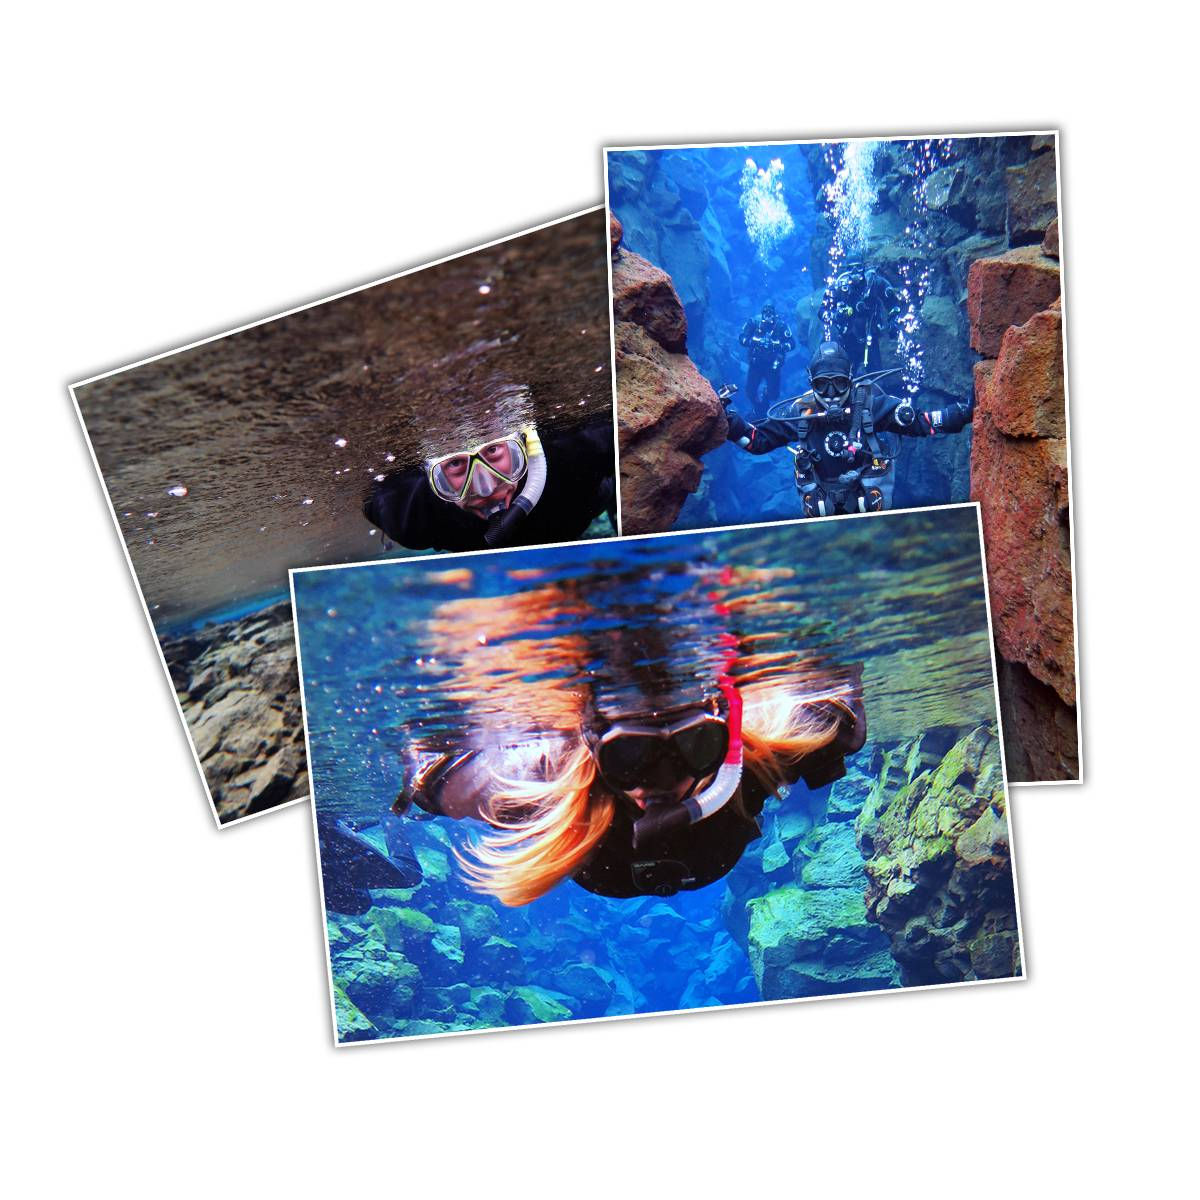 Selection of three customer tour photos from diving and snorkeling tours in Silfra fissure in Iceland with DIVE.IS